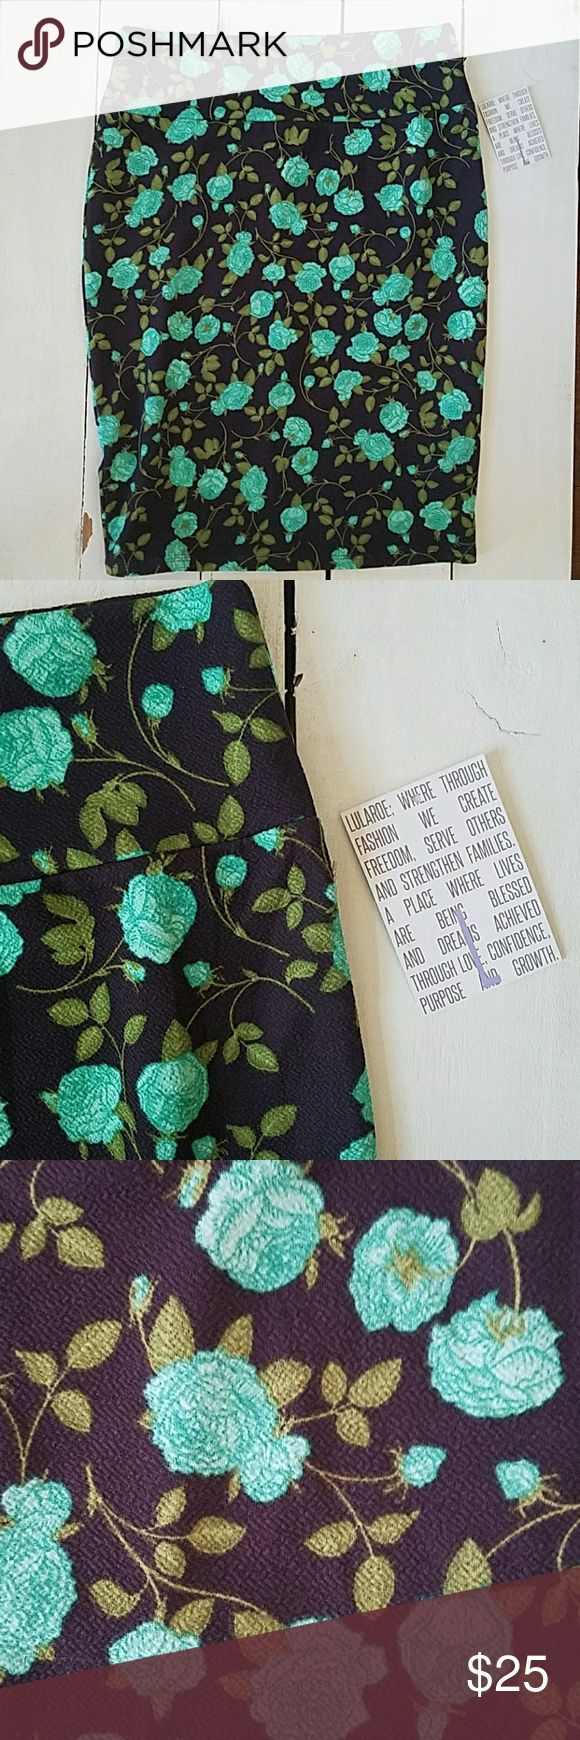 Aqua green floral print LLR Cassie (pencil skirt) Fun flirty pencil skirt in size large by Lularoe. Black background with aqua green floral and green leaves. LuLaRoe Skirts Pencil